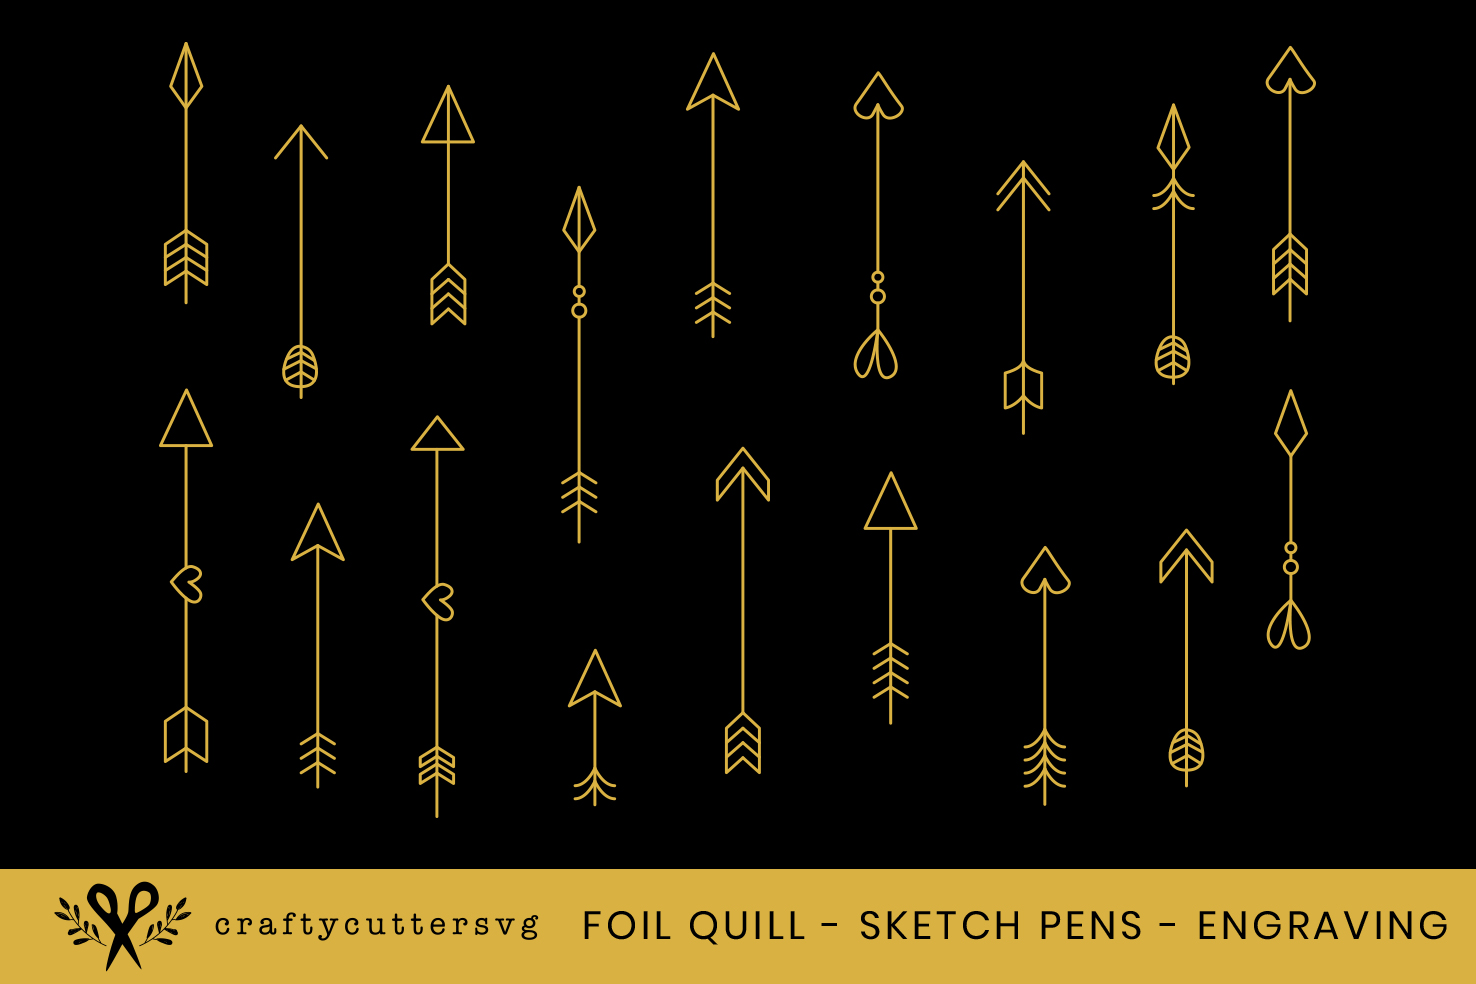 Foil Quill Arrows Embossing Sketch Pens Engraving Arrow example image 1